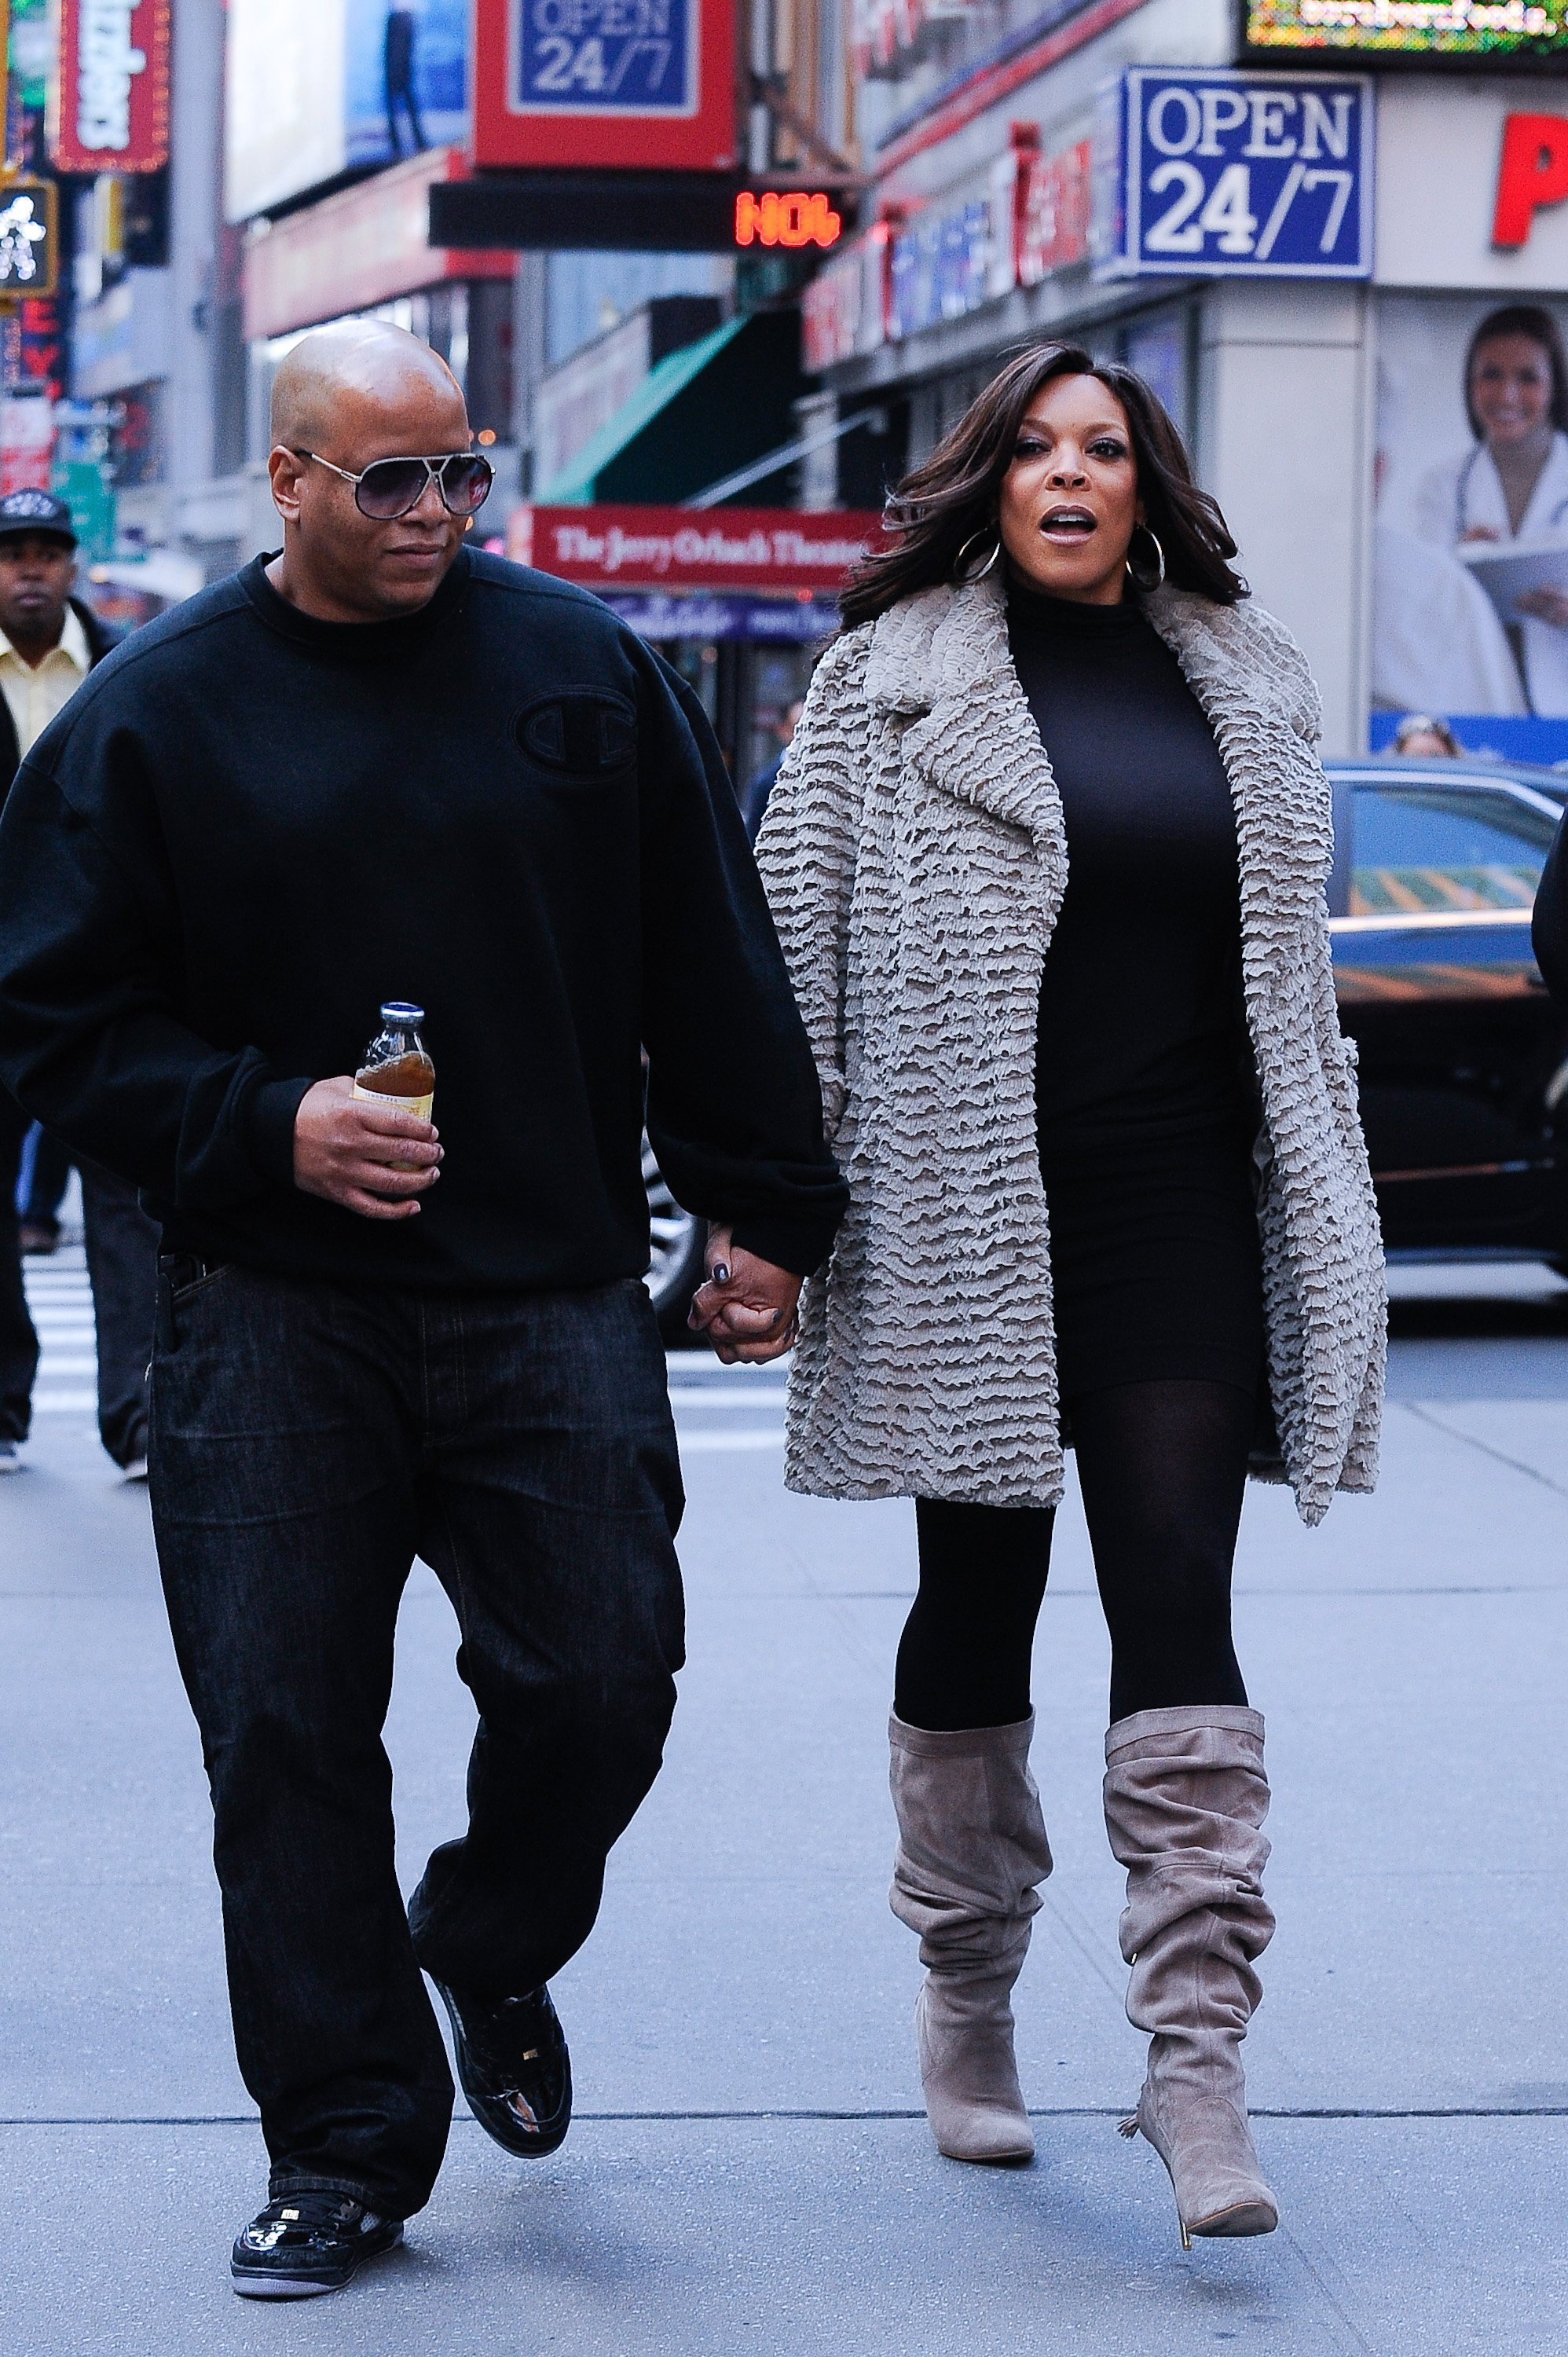 Wendy Williams and Kevin Hunter during better days in New York City in 2010. | Photo: Getty Images